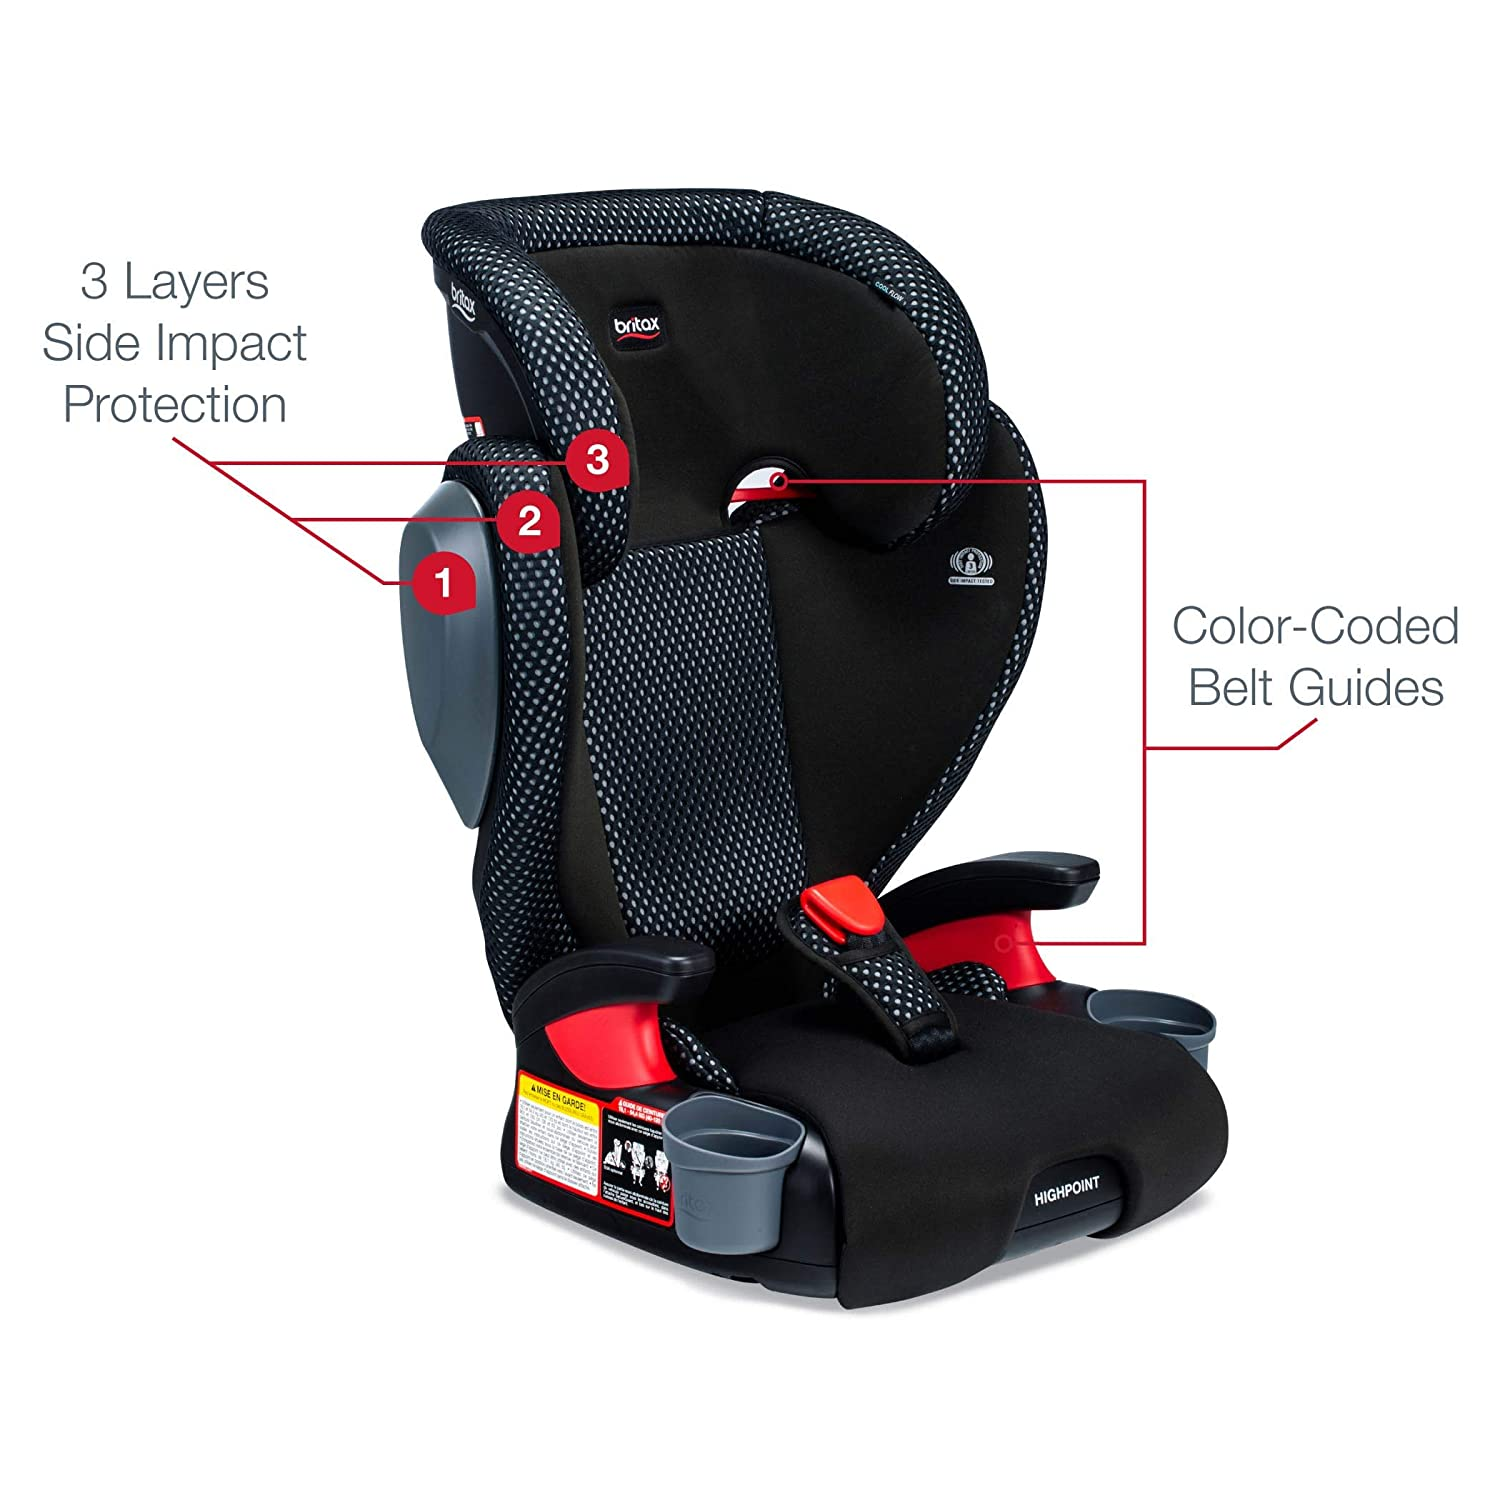 Gray Britax USA Highpoint 2-Stage Belt-Positioning Booster Cool Flow Ventilating Fabric Car Seat 3 Layer Impact Protection 40 to 120 Pounds Highback and Backless